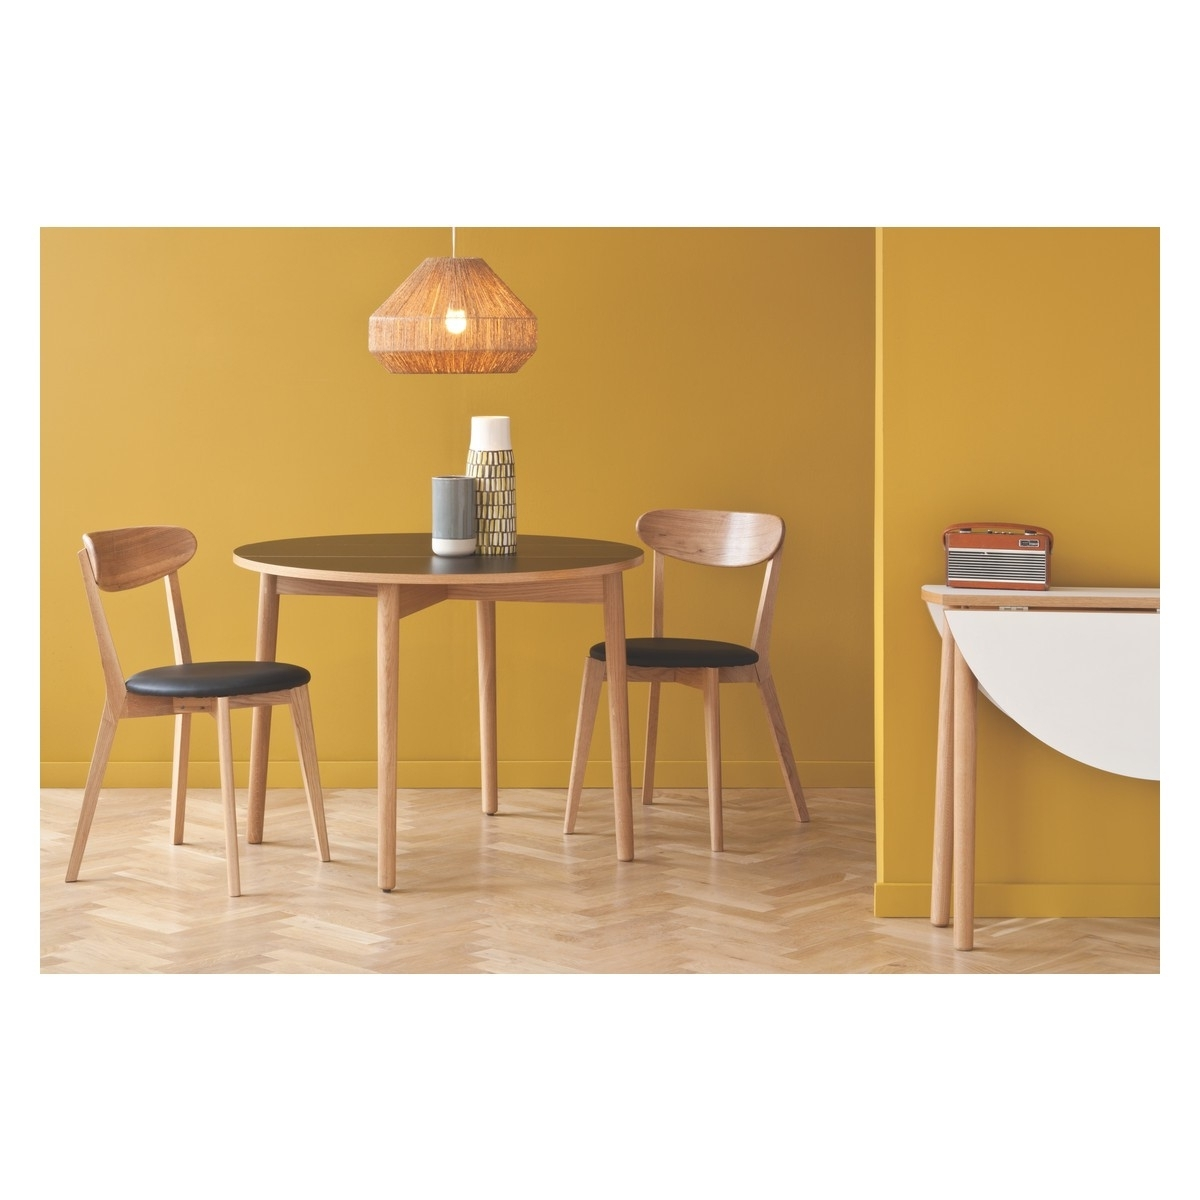 Modern Round Wooden Two Seater Dining Table With Chairs Of Great Two Throughout Widely Used Two Seater Dining Tables (View 13 of 25)